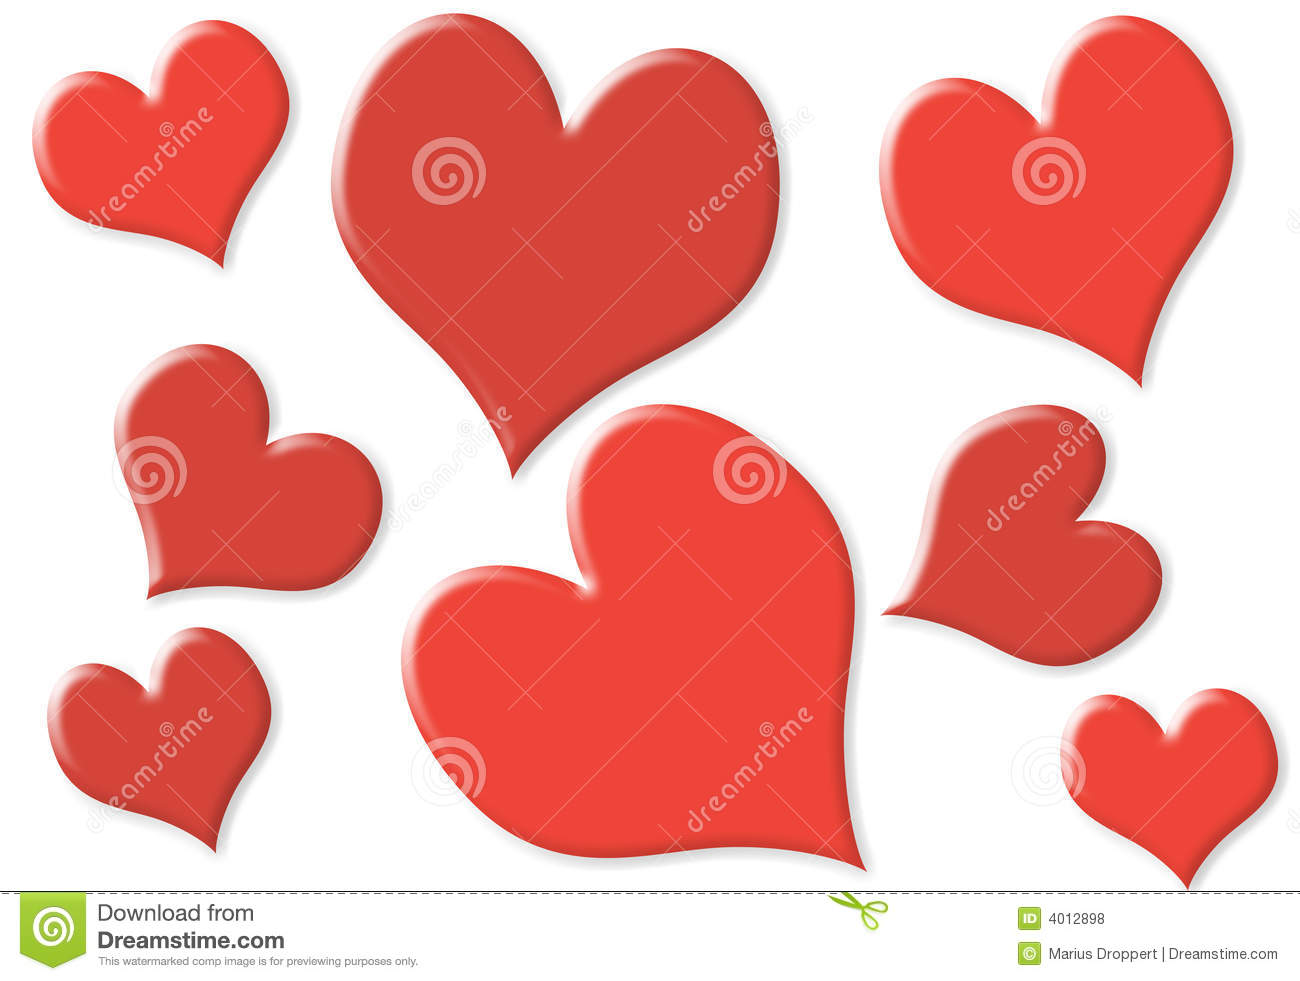 Random Small And Big Hearts With 2 Colors Royalty Free